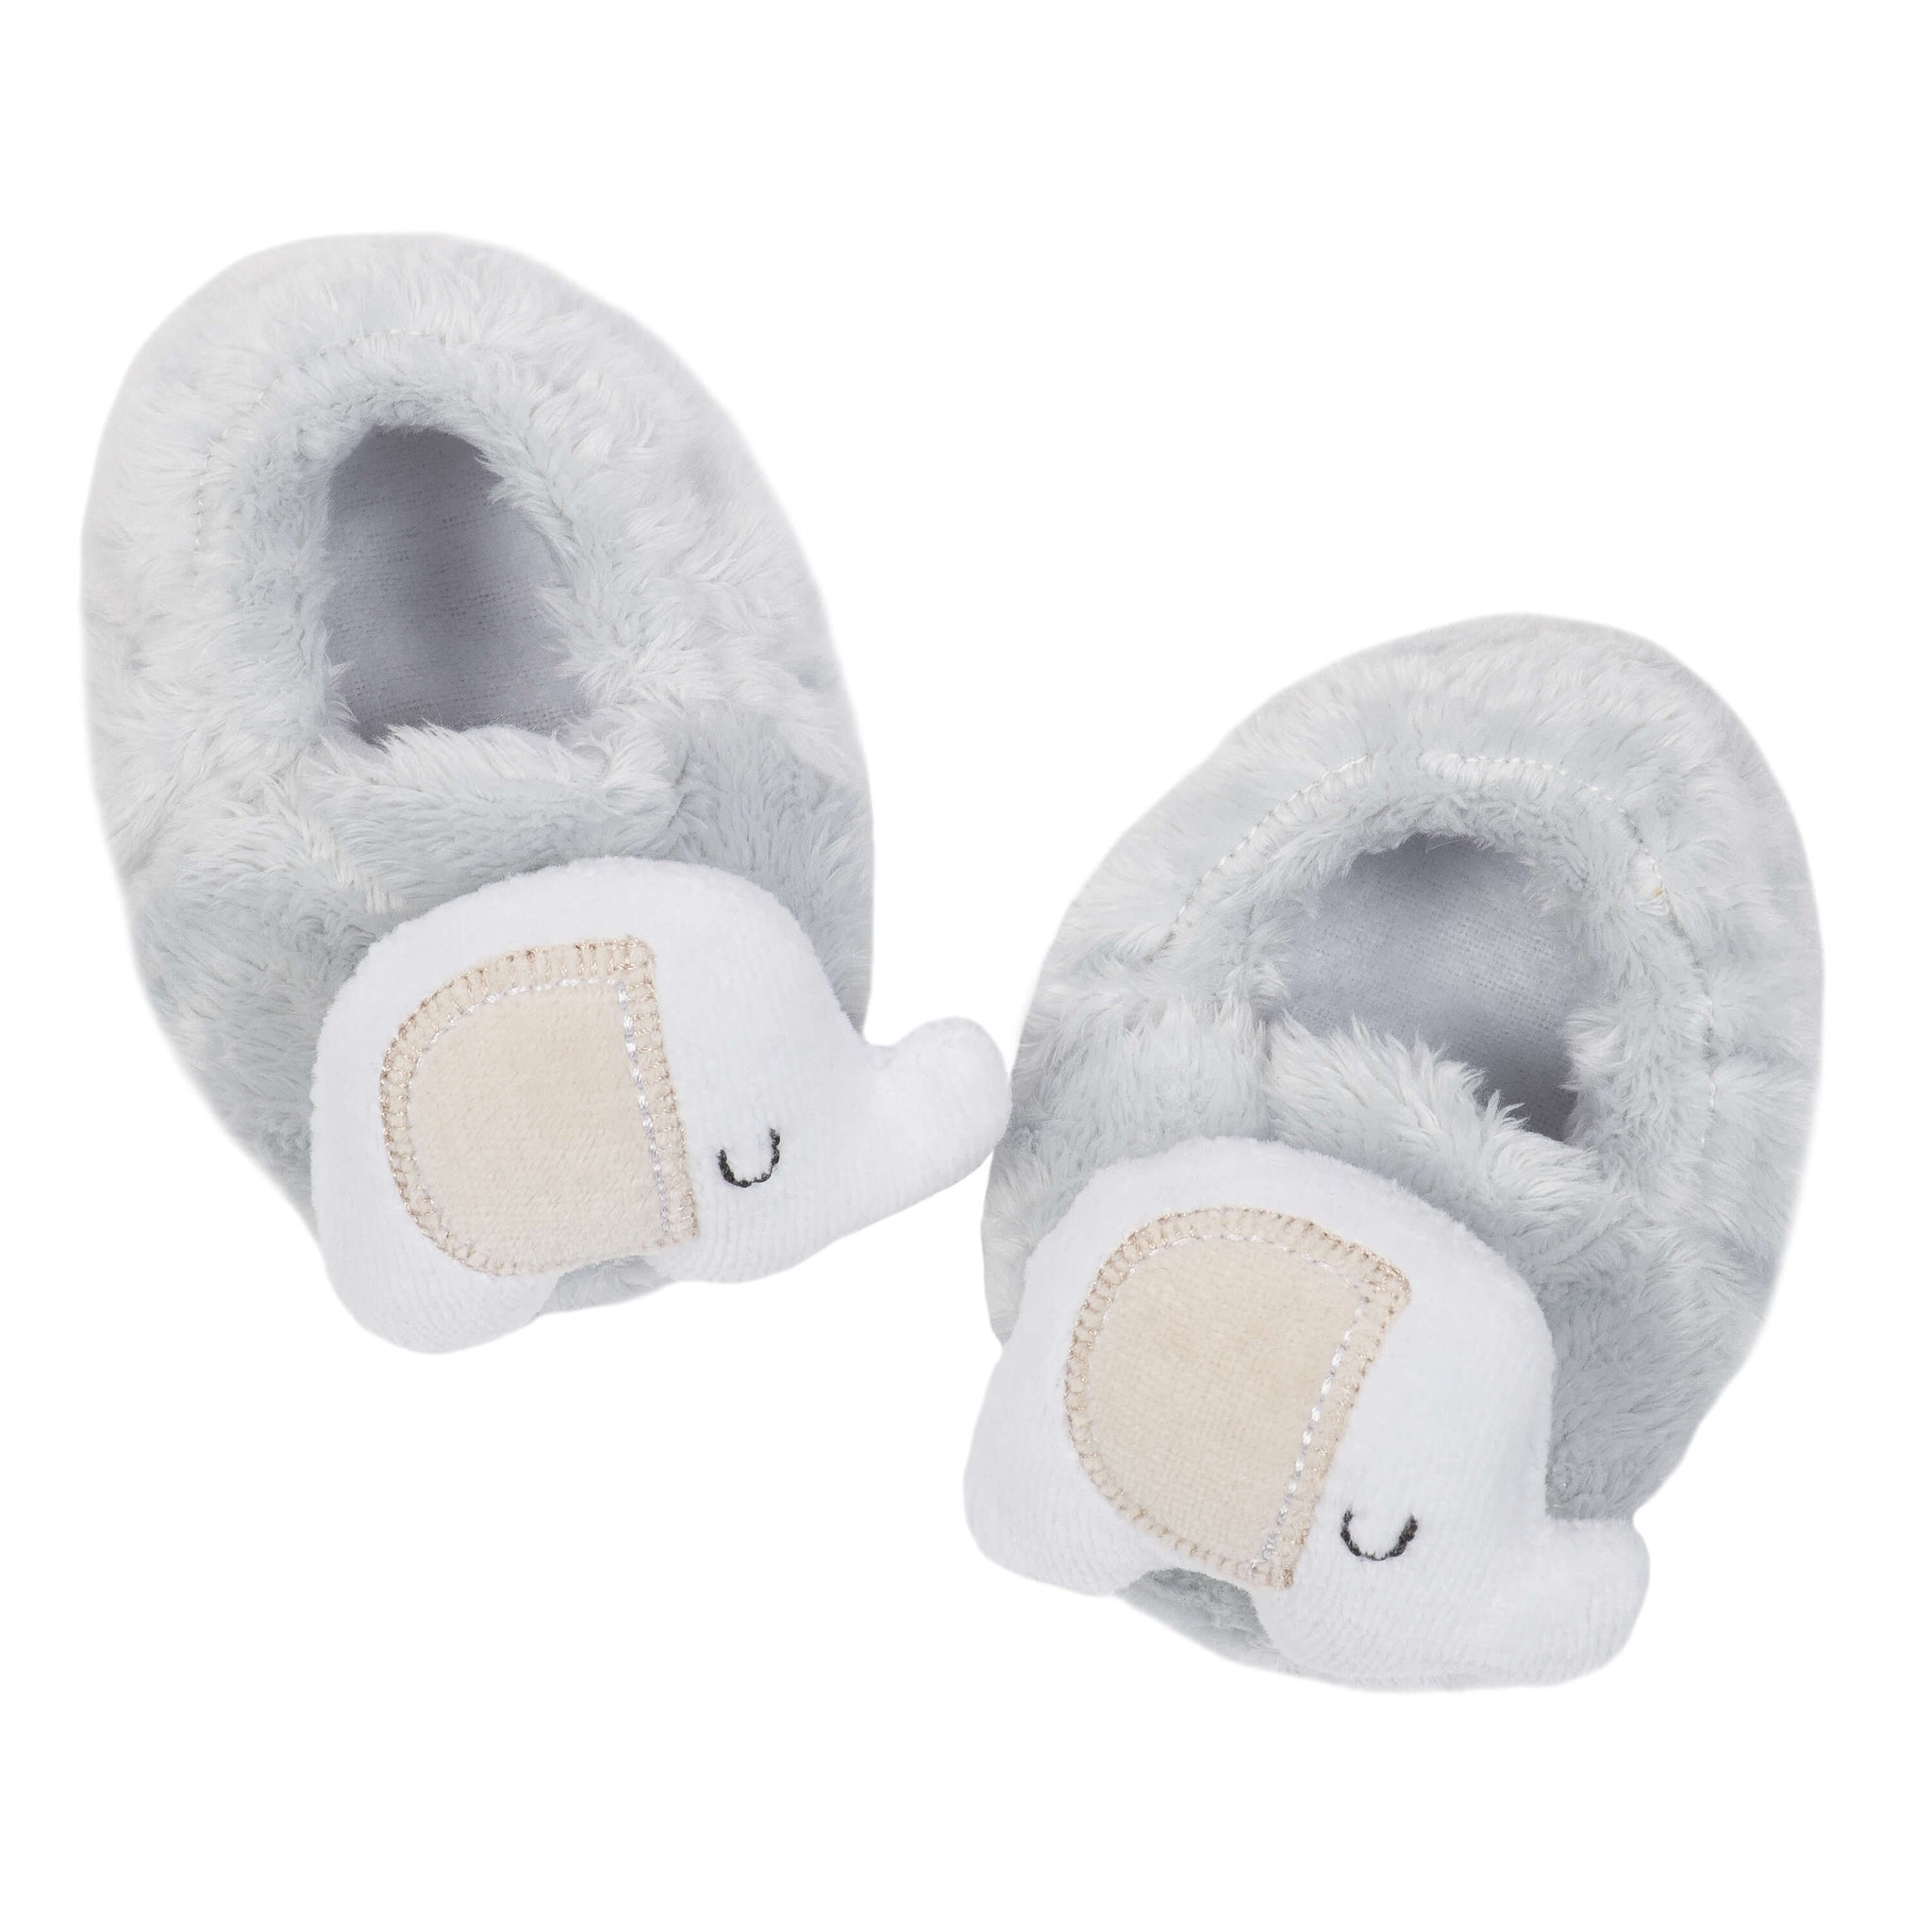 1-Pack Neutral Elephant Velboa Booties